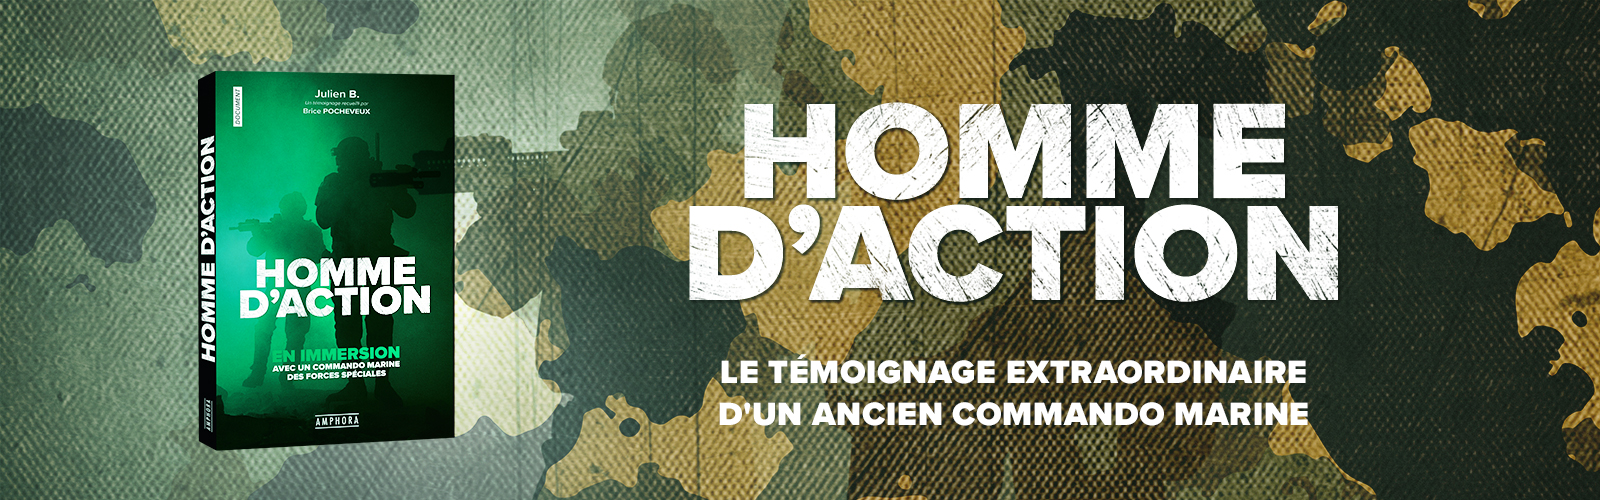 Homme d'action banner